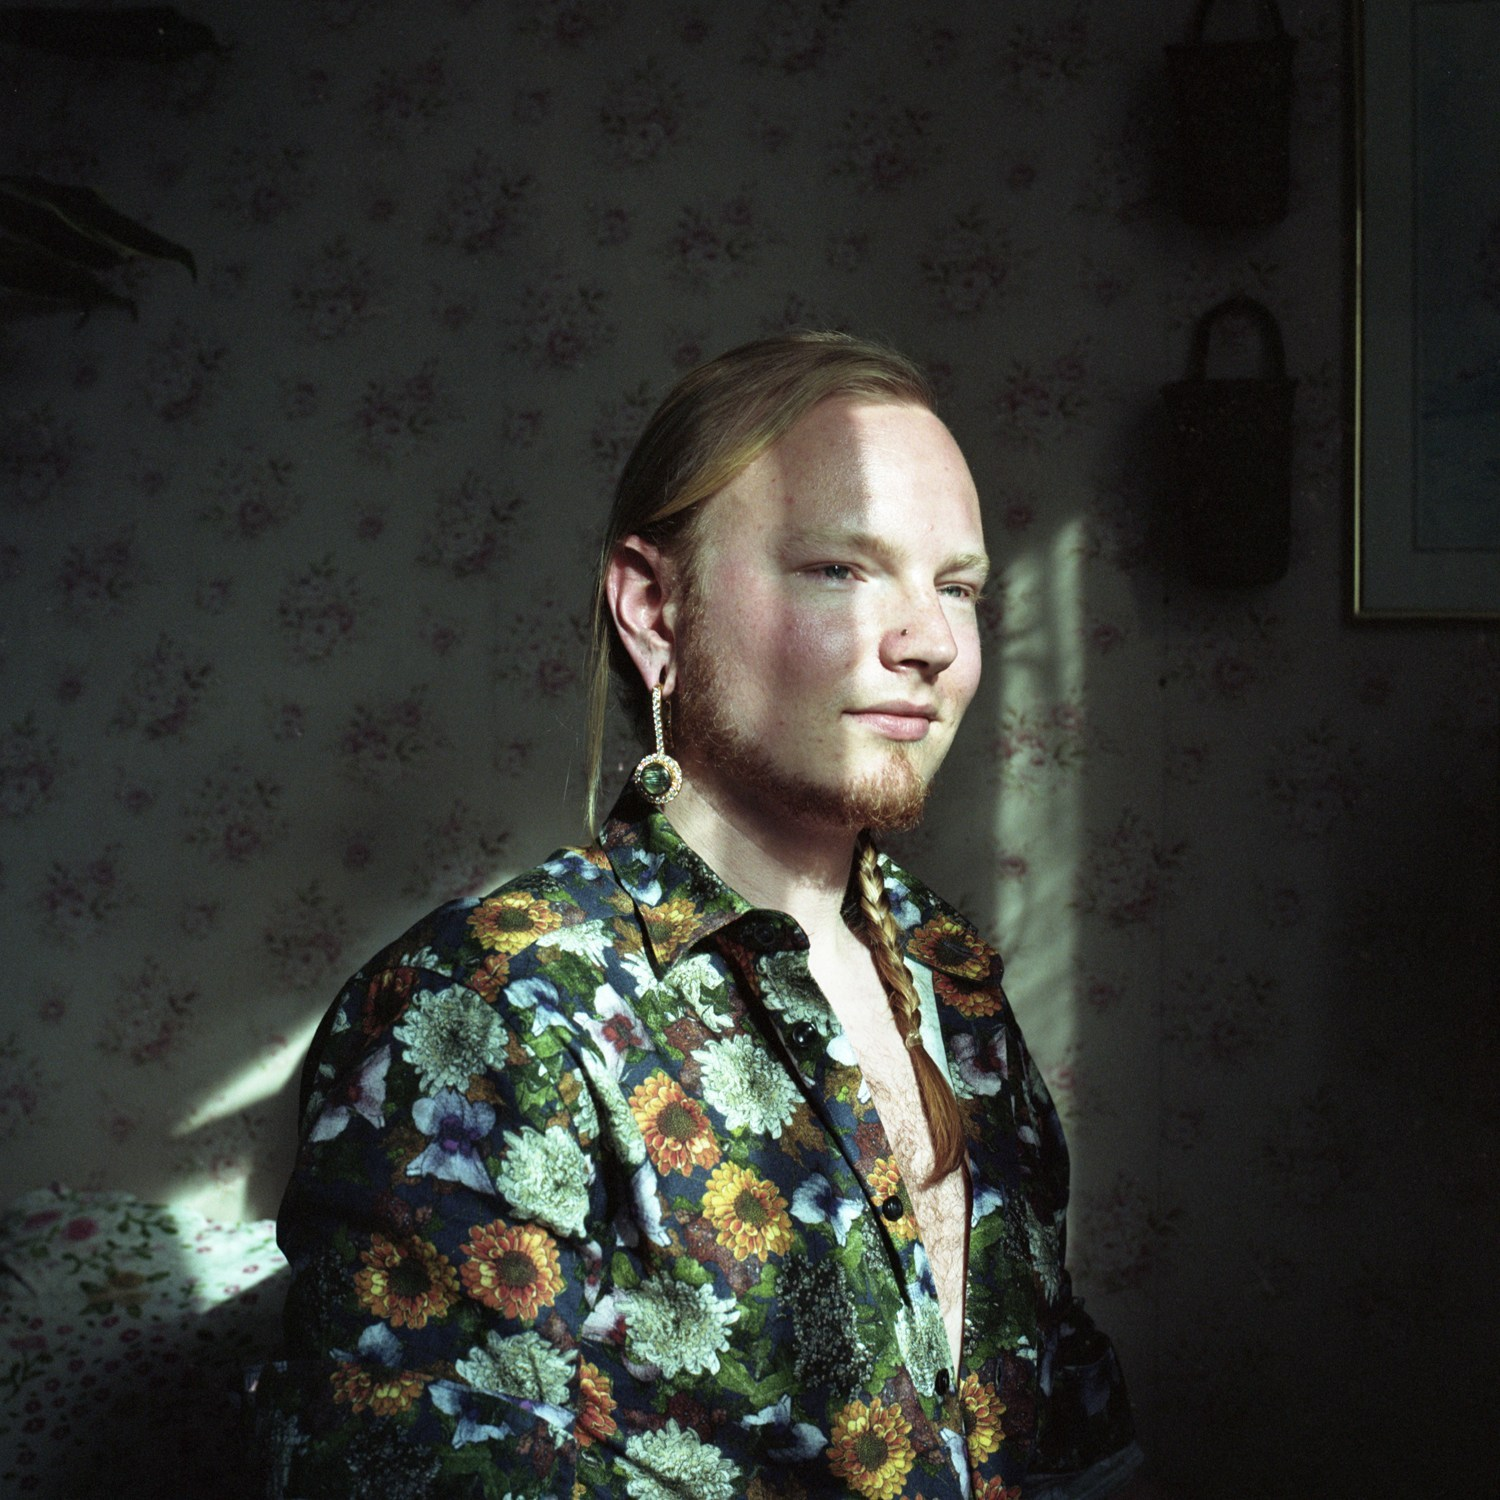 VERNISSAGE: HER TAKE: (RE)THINKING MASCULINITY BY VII PHOTO - VII Photo member Linda Bournane Engelberth will host the vernissage.15.30SATURDAY MAY 25THOVERLYSSALEN (BY THE FREDRIKSTAD LIBRARY)